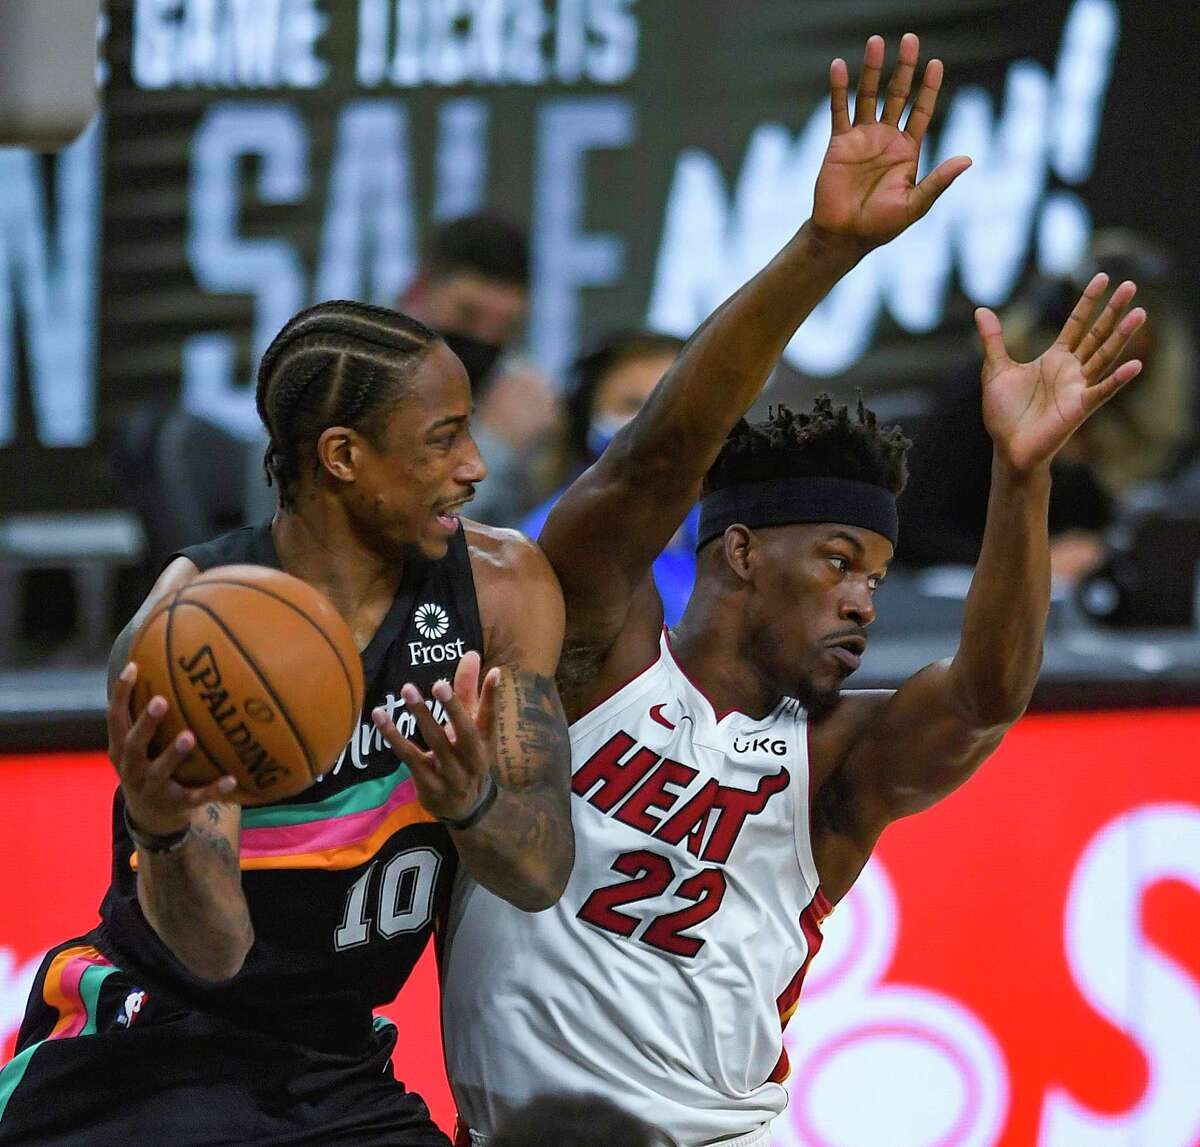 DeMar DeRozan (10) of the San Antonio Spurs dishes off for an assist against Jimmy Butler (22) of the Miami Heat during NBA action in the AT&T Center on Wednesday, April 21, 2021.